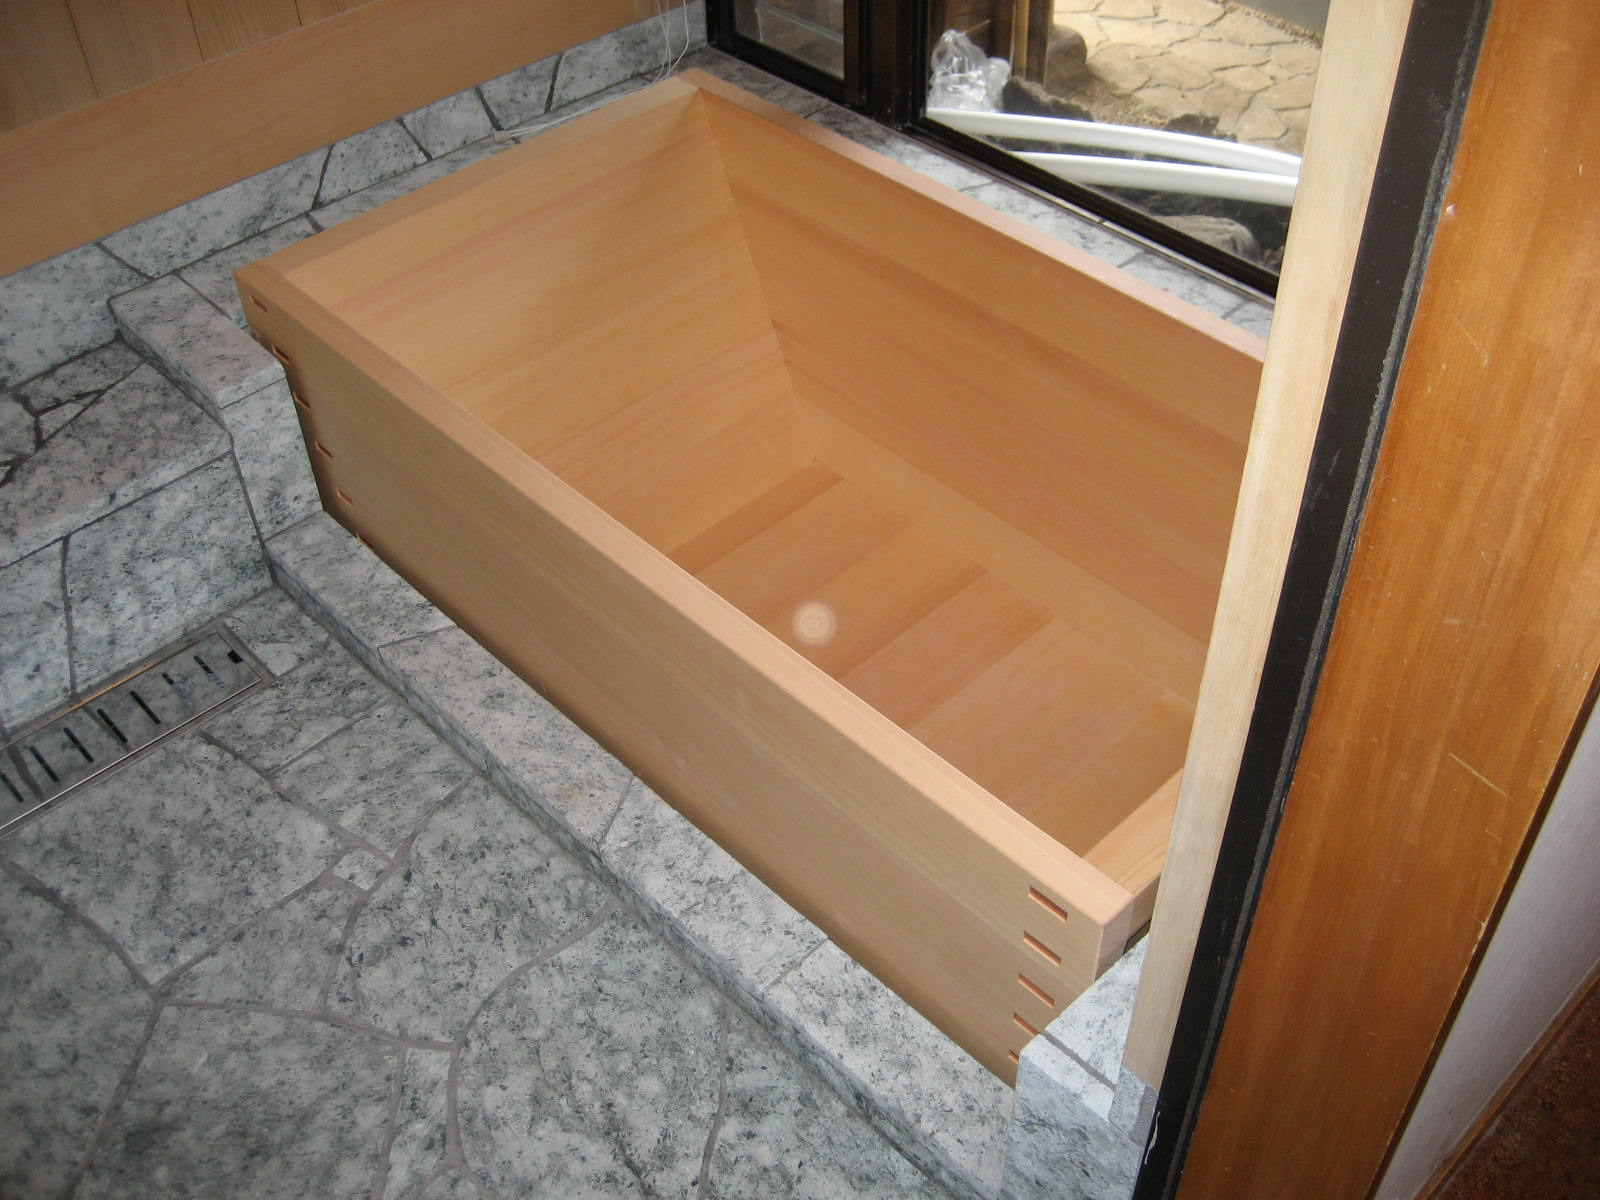 hinoki wood japanese bathtub